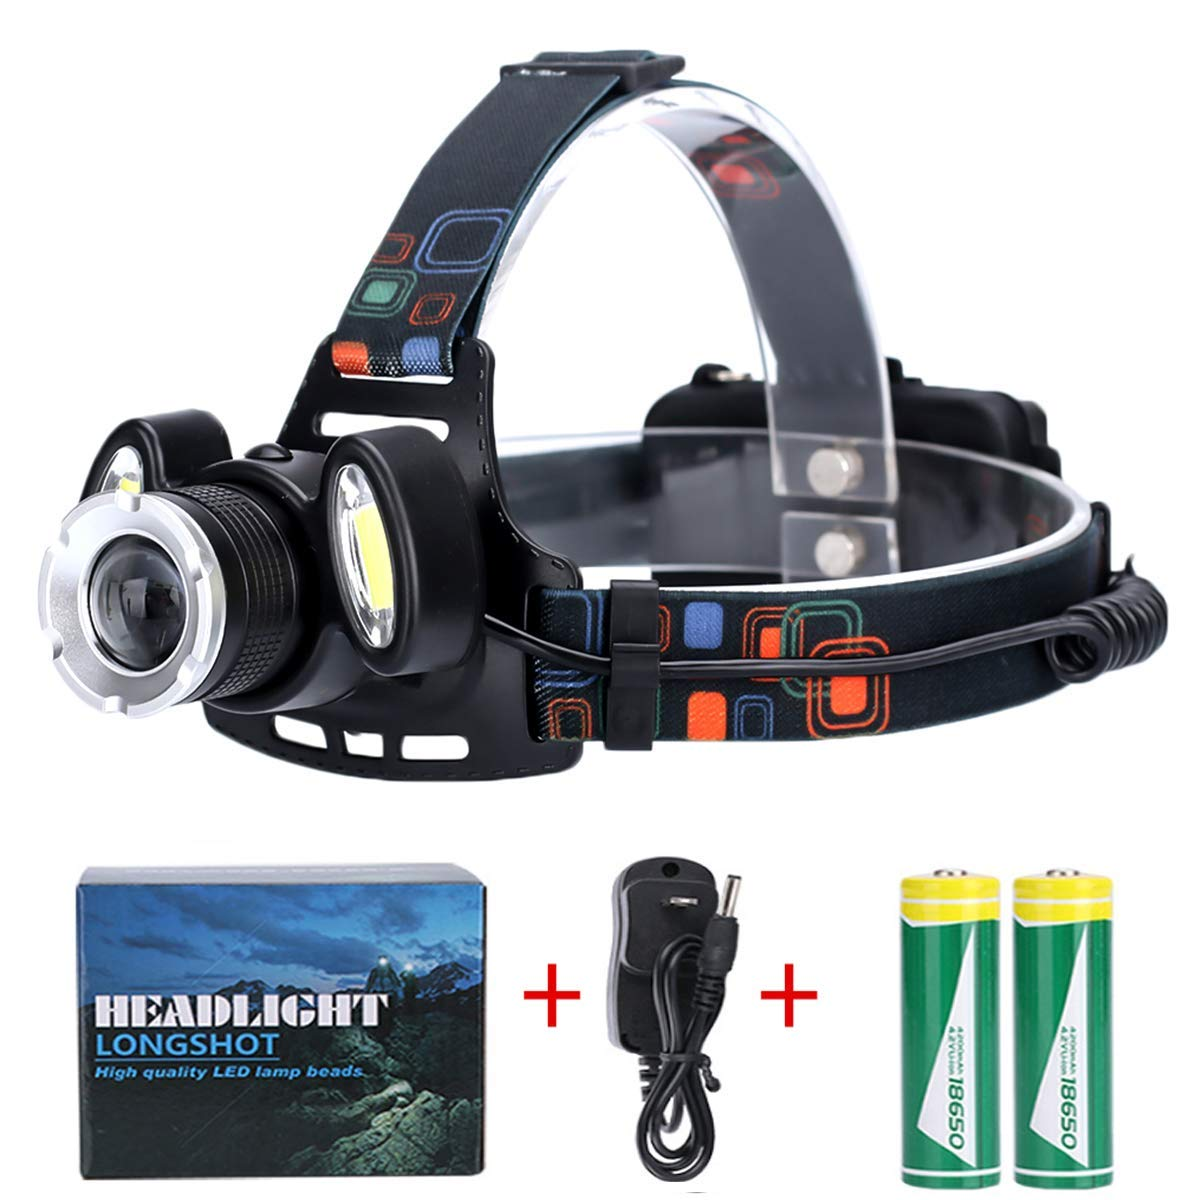 Headlamps for Camping, KATEGY LED Headlamp Flashlight Zoomable 4 Light Modes Lightweight Super Bright Headlight for Camping, Fishing, Hunting, Hiking with 18650 Rechargeable Batteries